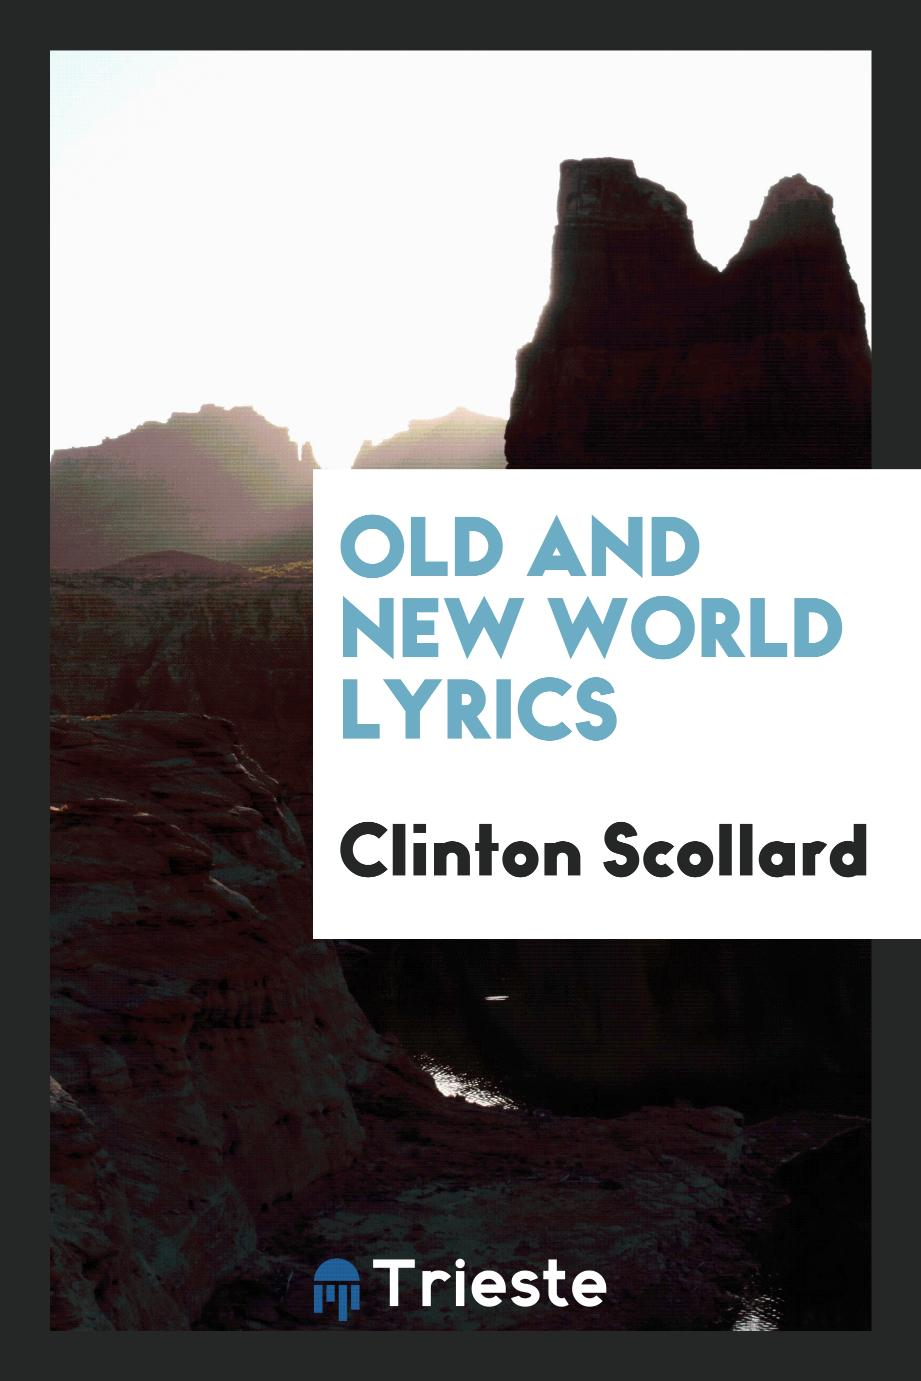 Old and New World Lyrics